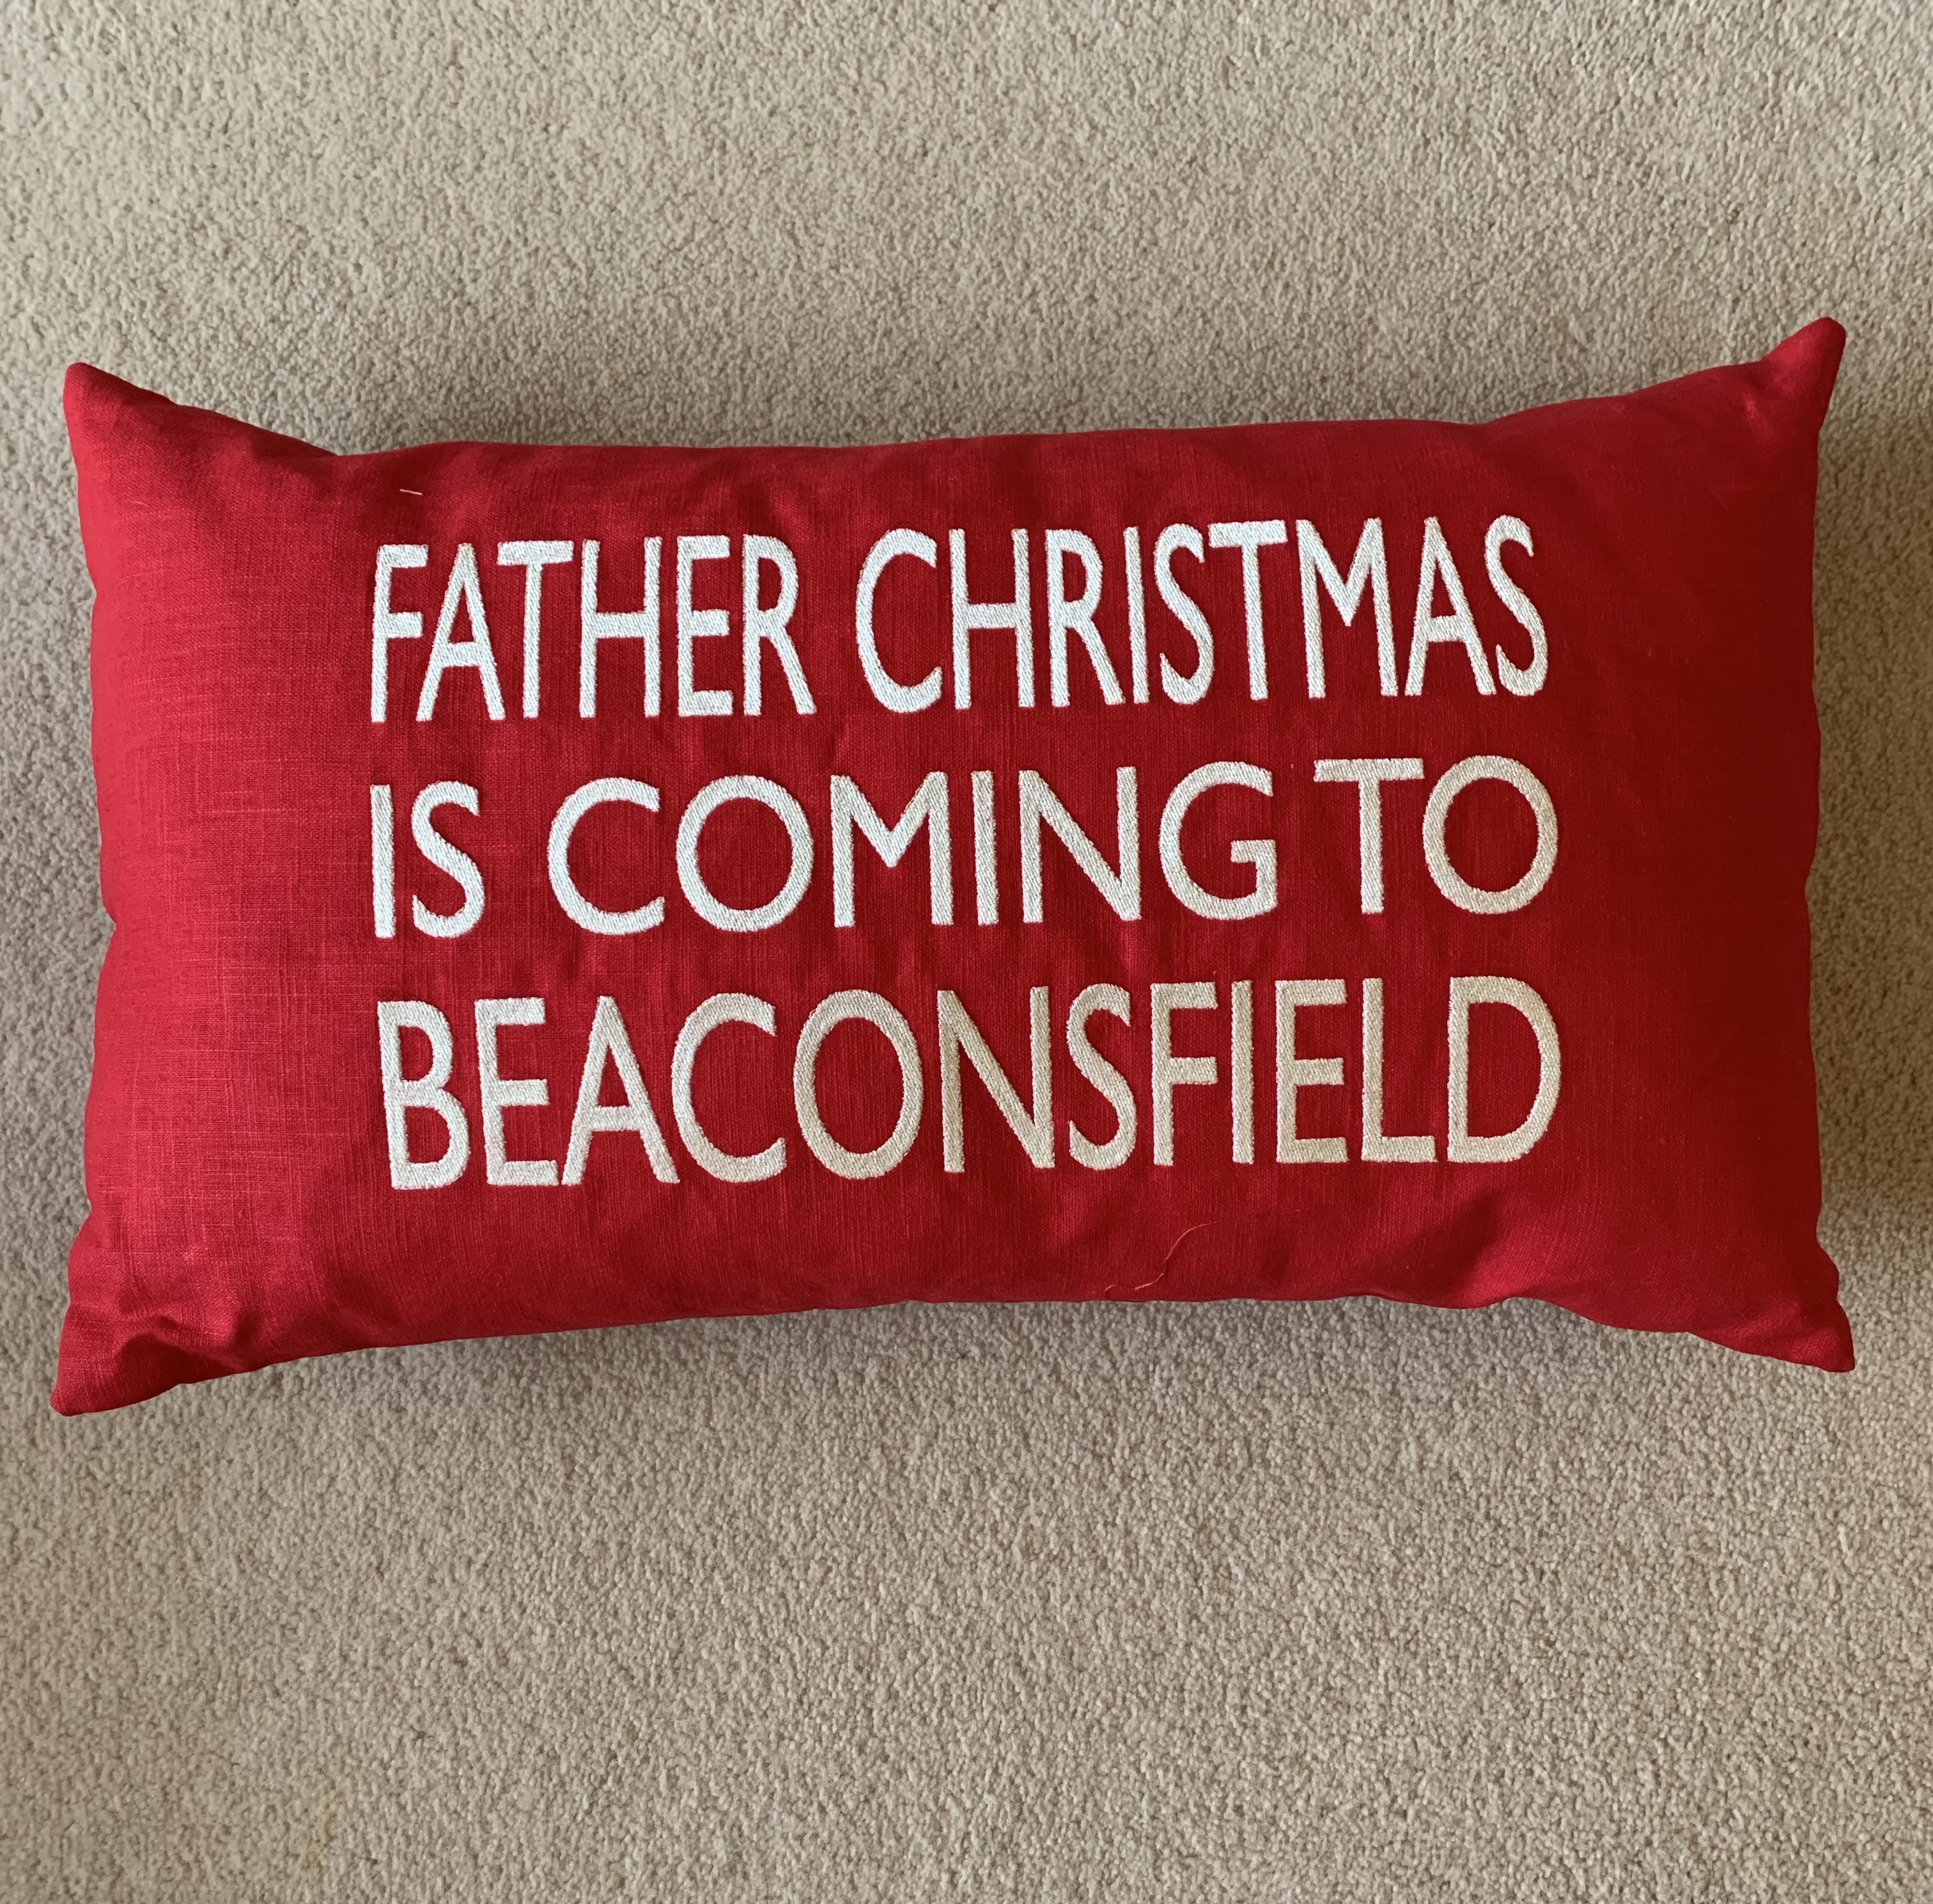 Beaconsfield Christmas Cushion Red Linen - Father Christmas is Coming to Beaconsfield